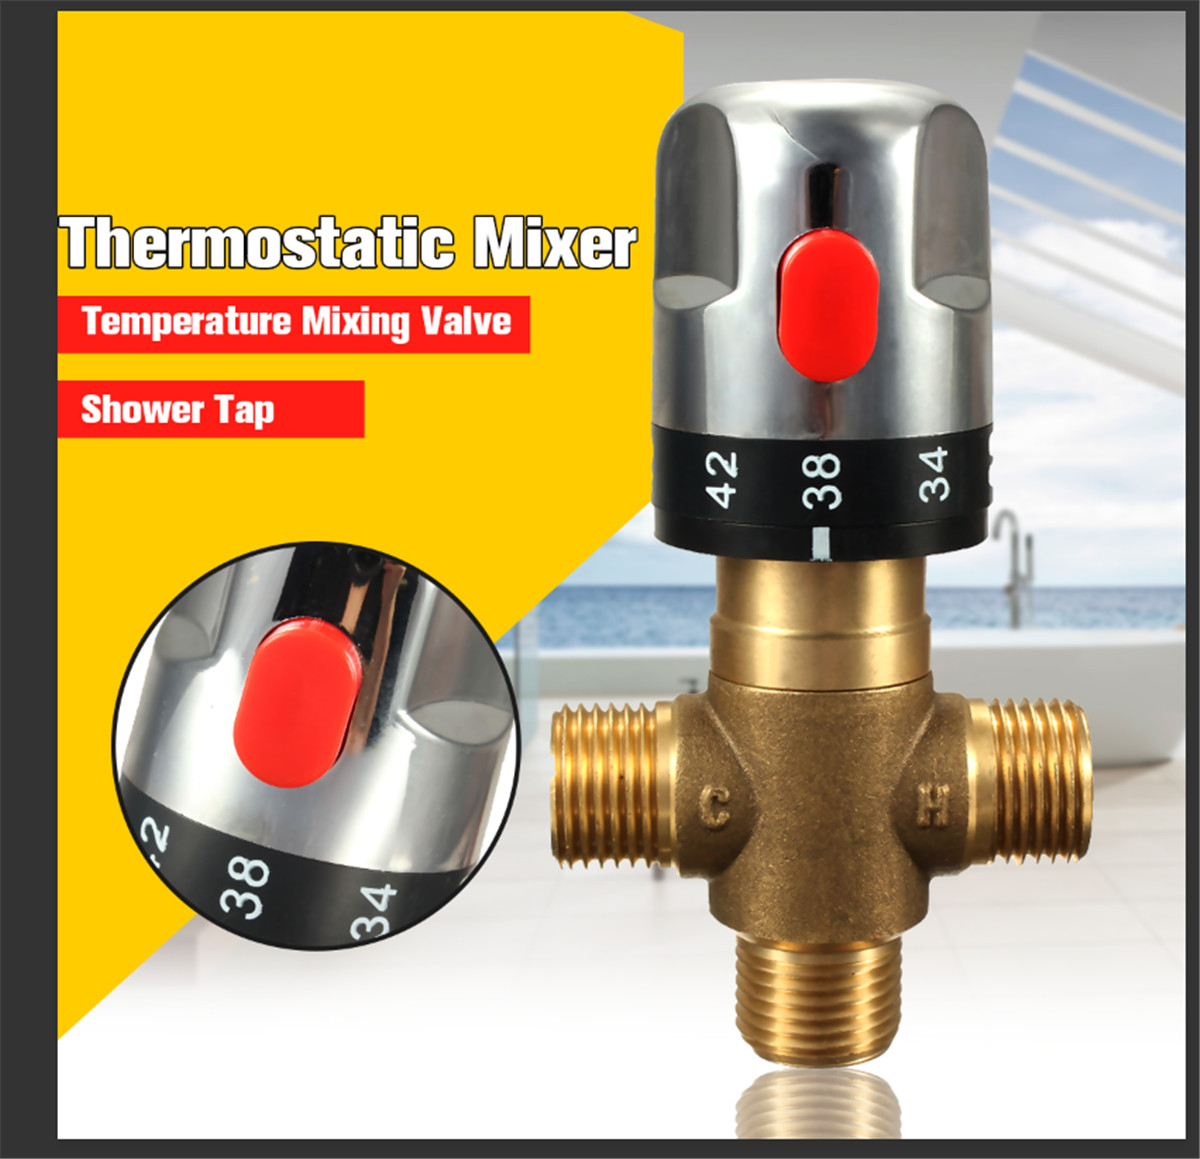 Xueqin Brass Pipe Thermostat Faucet Thermostatic Mixing Valve Bathroom Water Temperature Control Faucet Cartridges